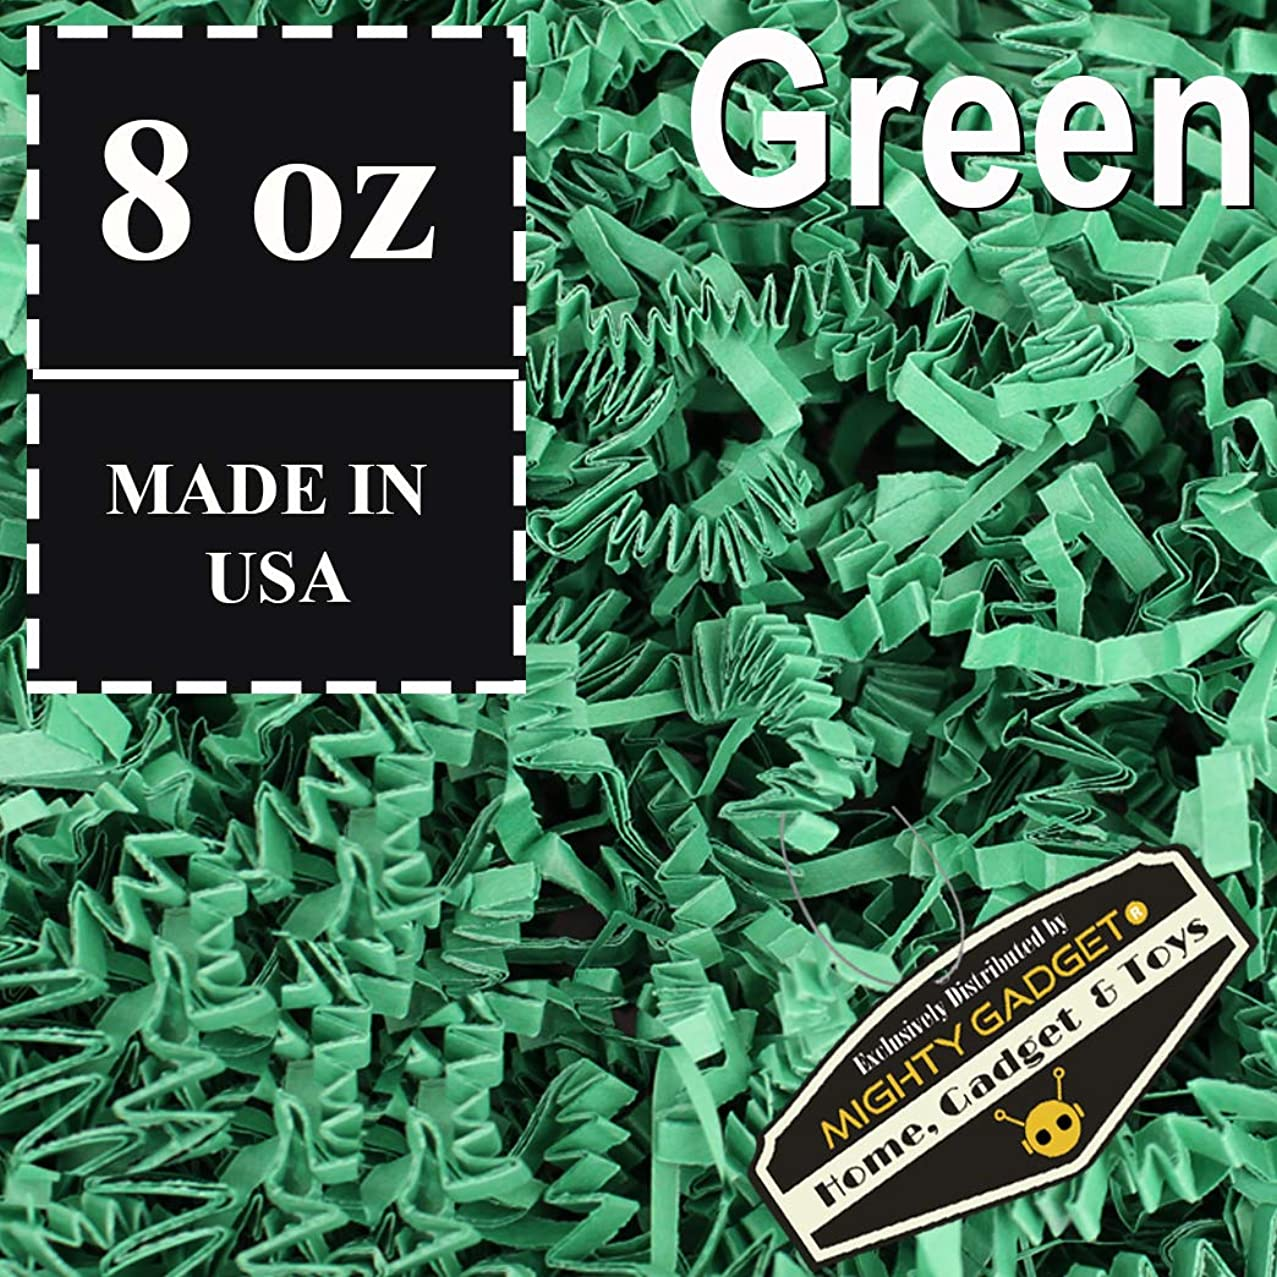 Mighty Gadget (R) 1/2 LB Green Crinkle Cut Paper Shred Filler for Gift Wrapping & Basket Filling ayrydxfljp198